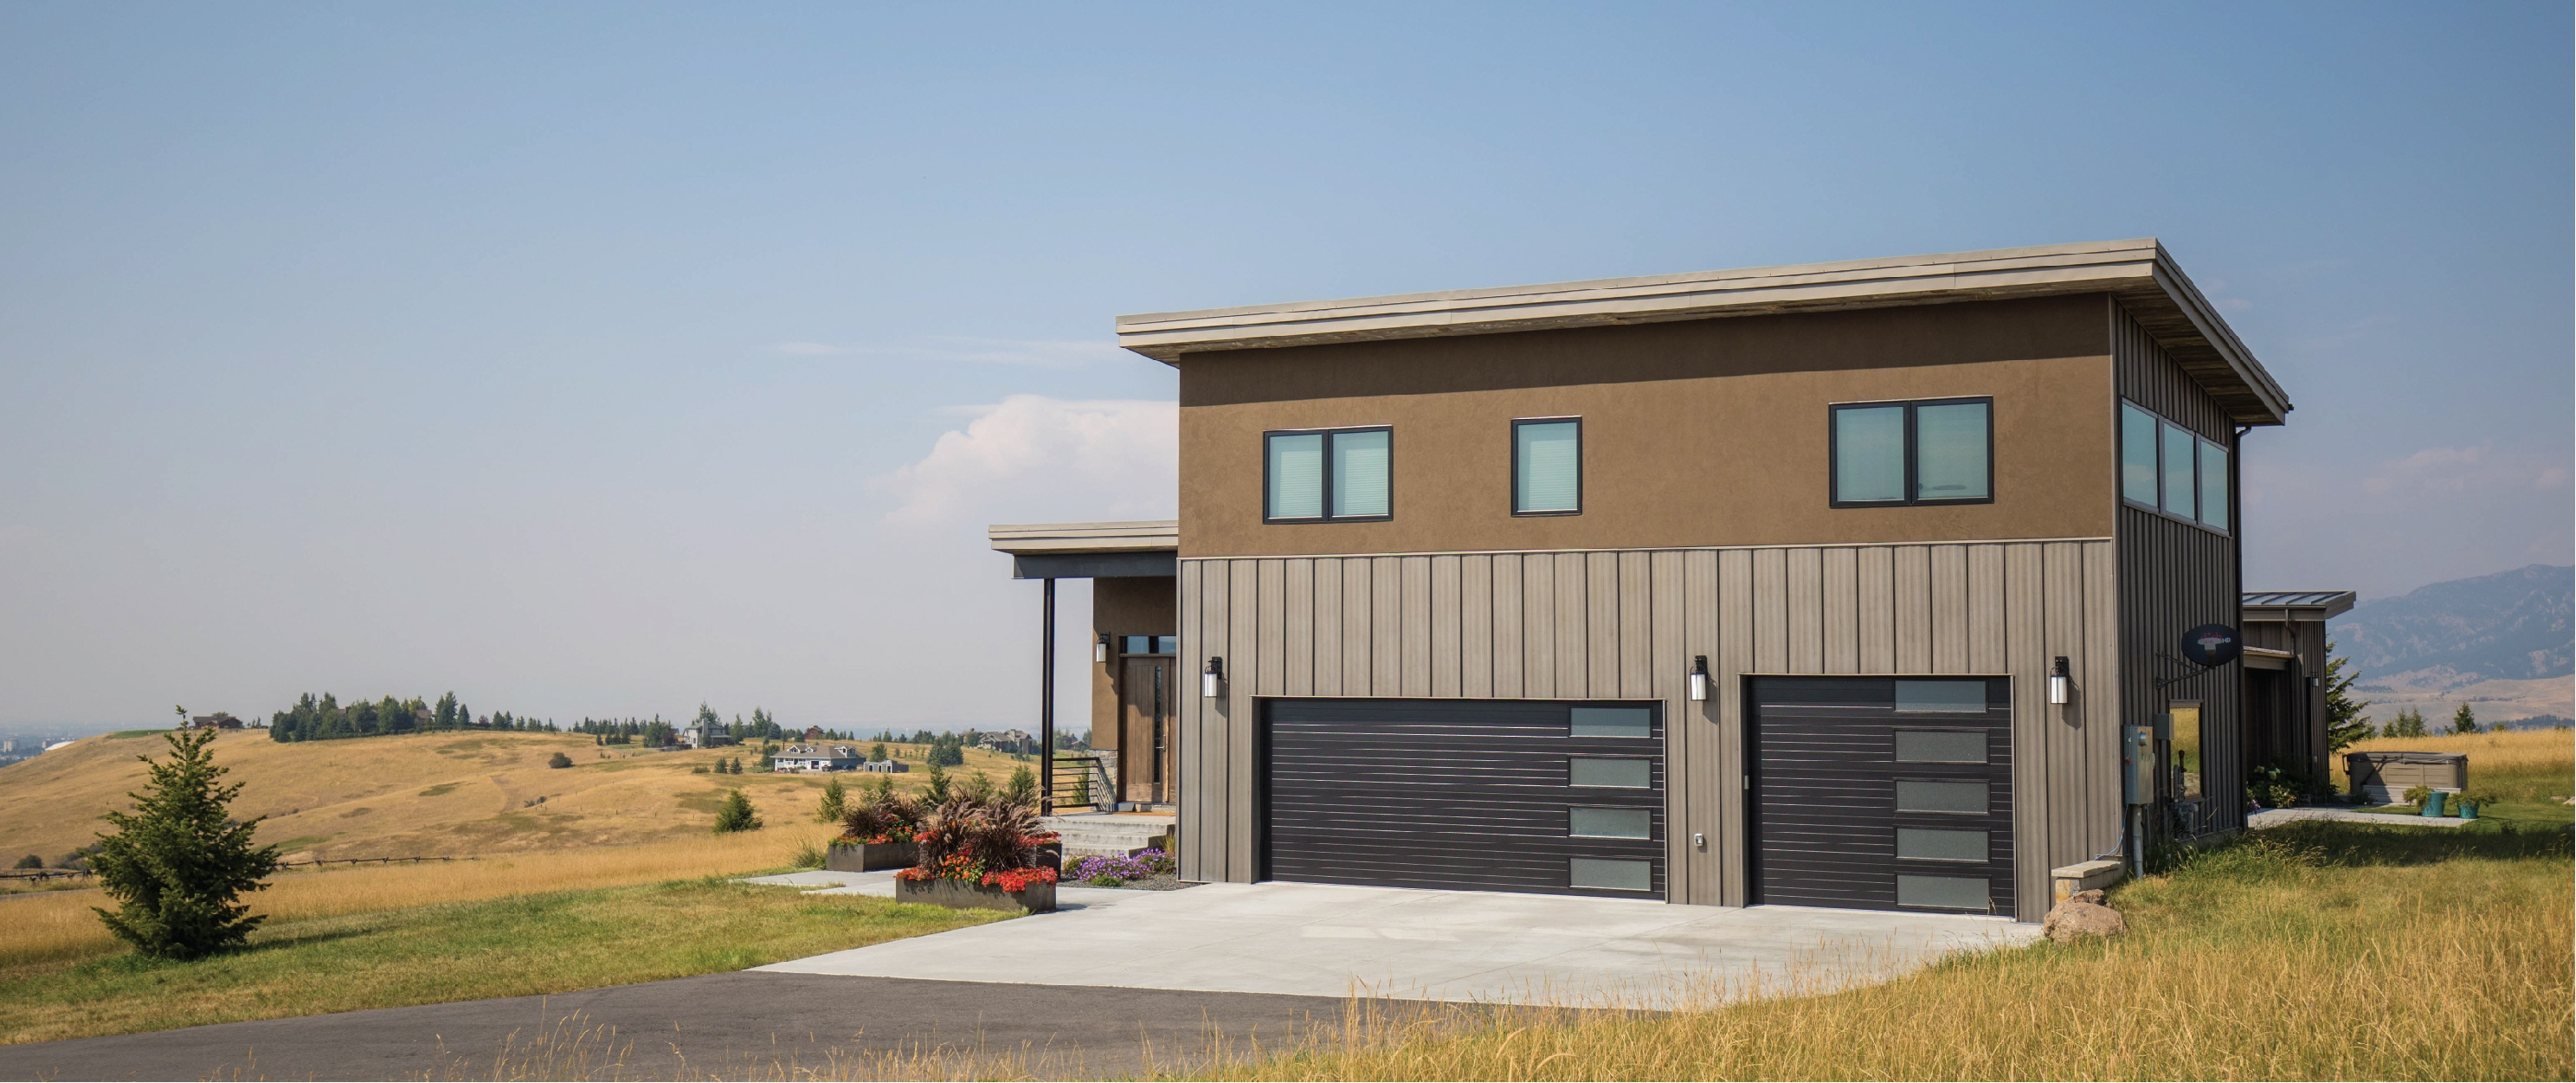 5 factors to consider for residential siding